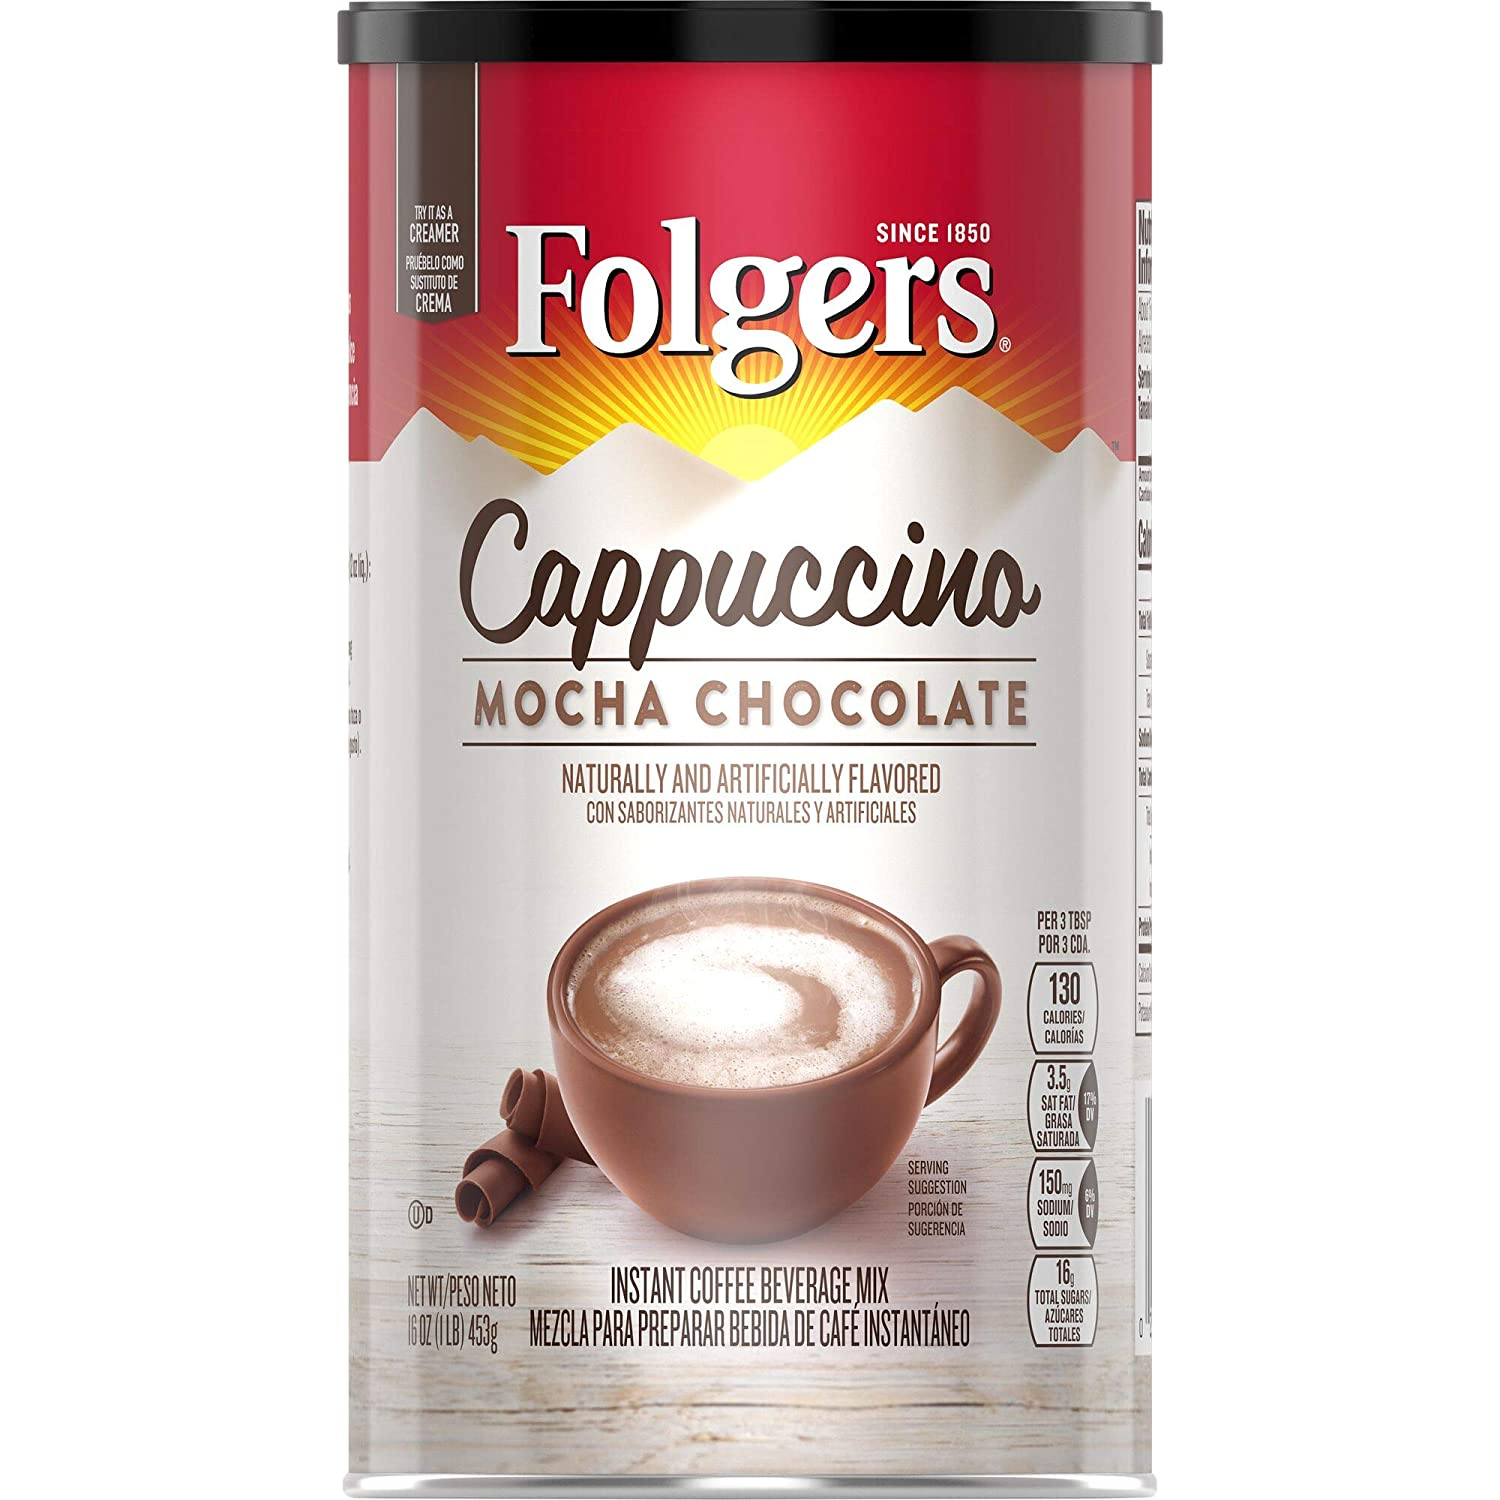 Folgers Mocha Chocolate Cappuccino, 16 oz, Packaging May Vary